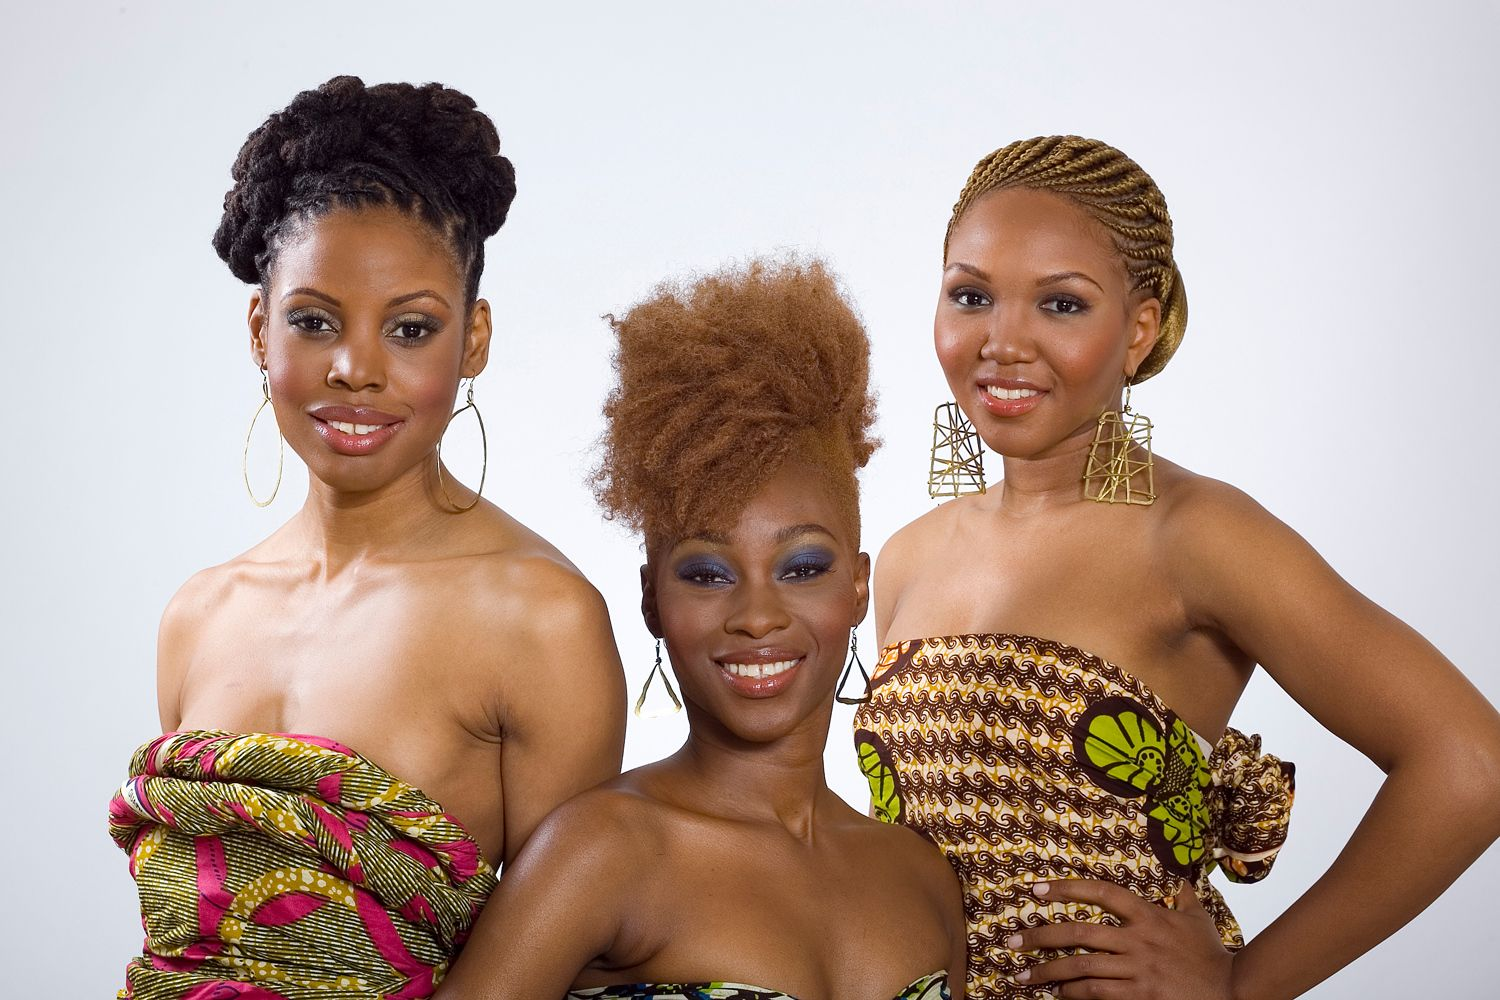 Ask Anu Natural Hair Styles Black Hair Care Natural Hair Salons